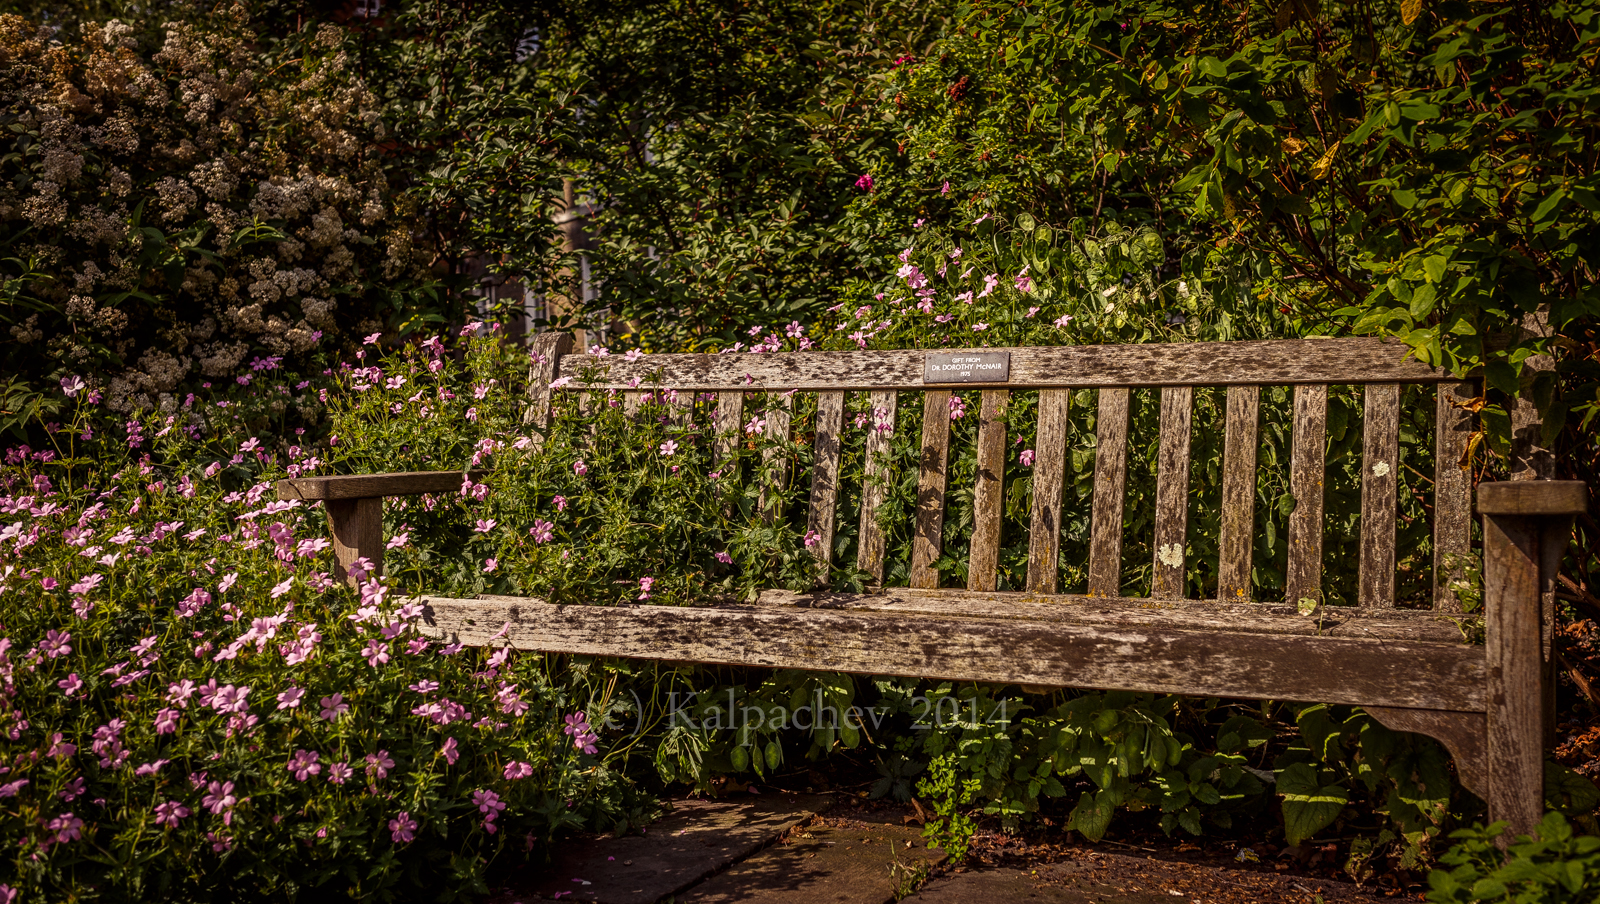 Gray's Inn gardens. London 2014